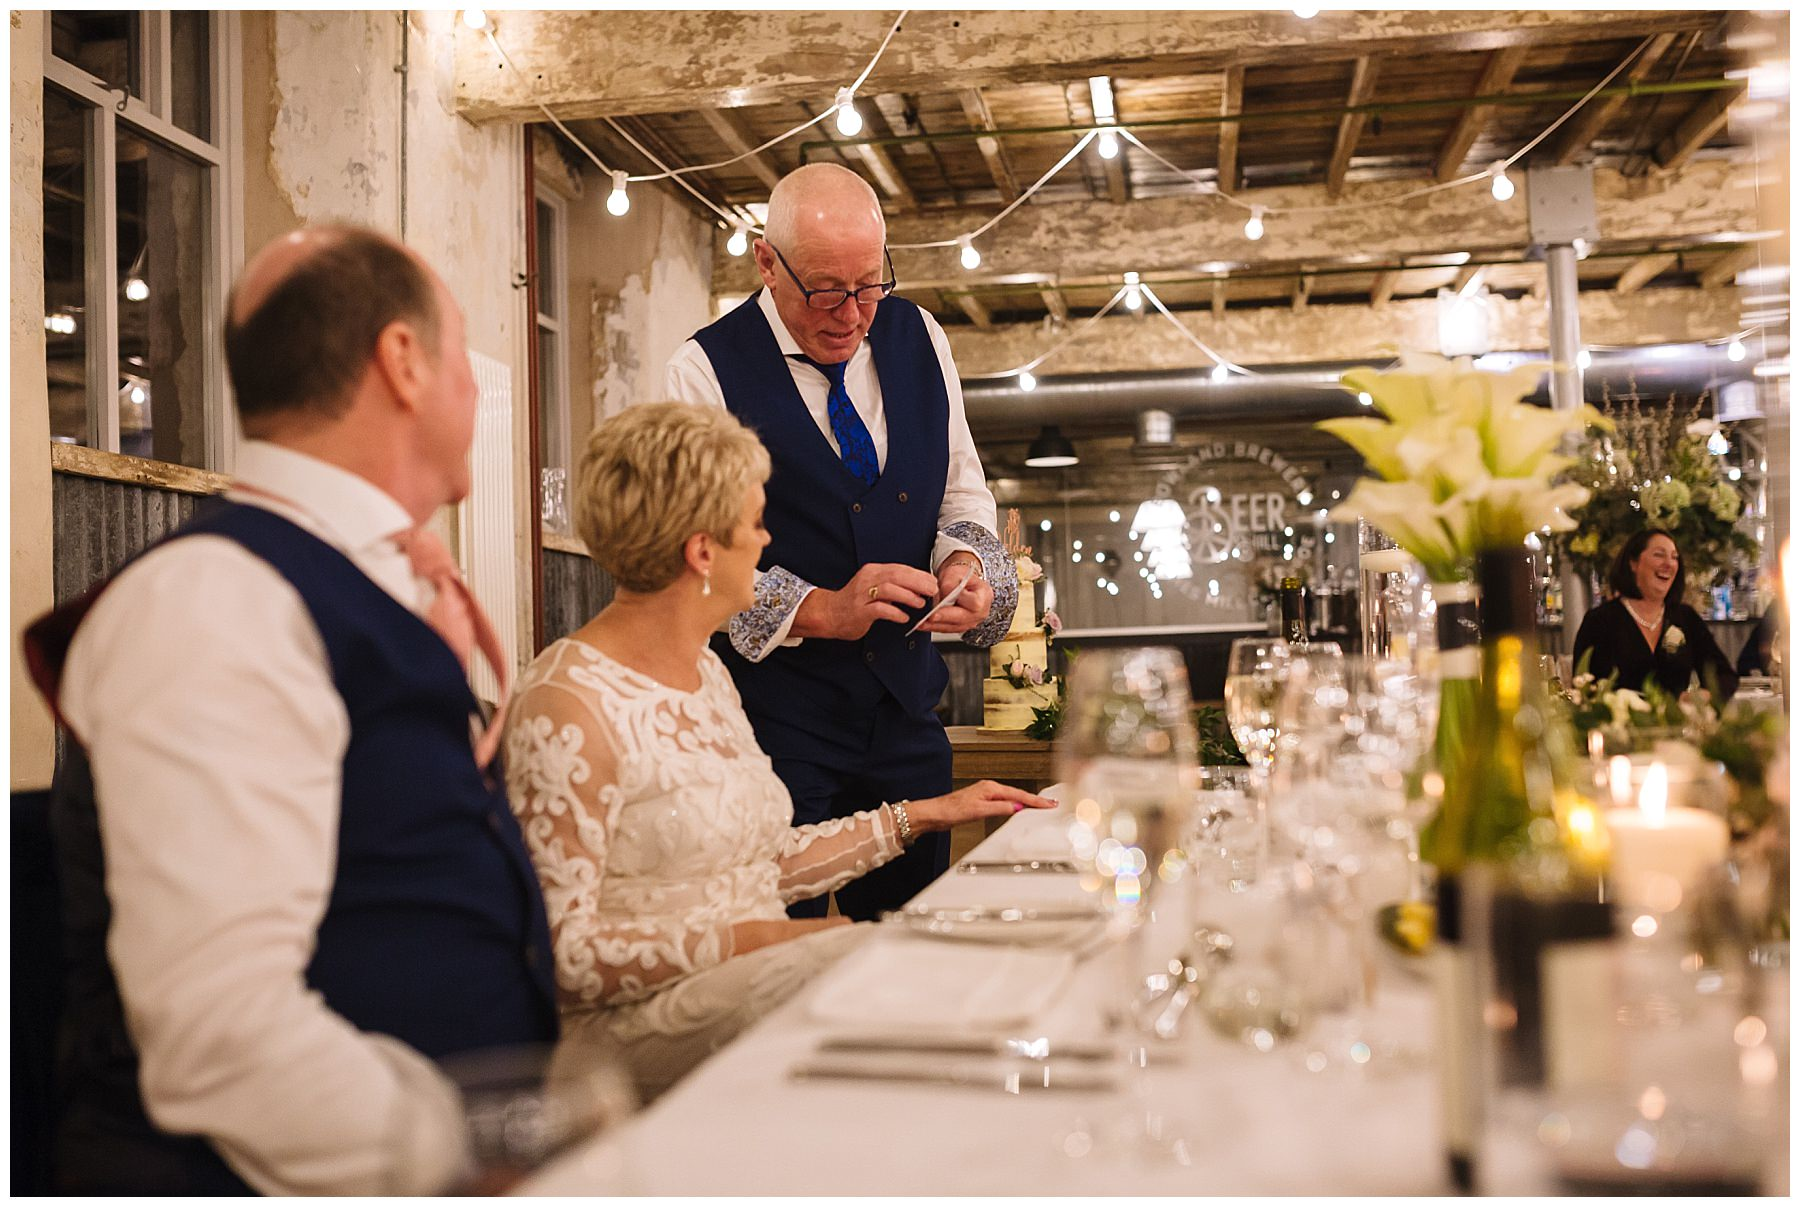 Holmes mill wedding speeches